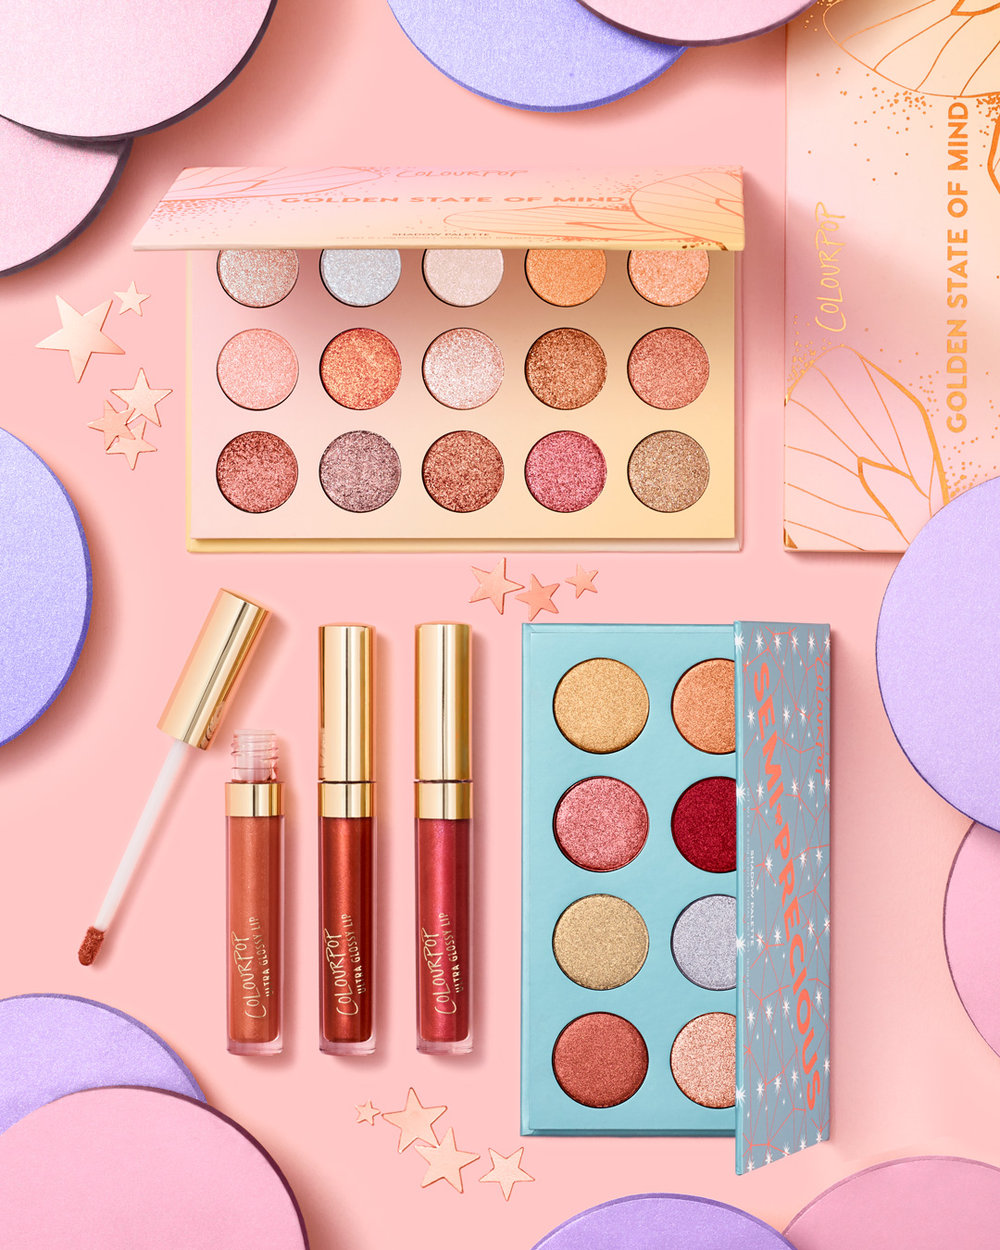 Colourpop social launch image